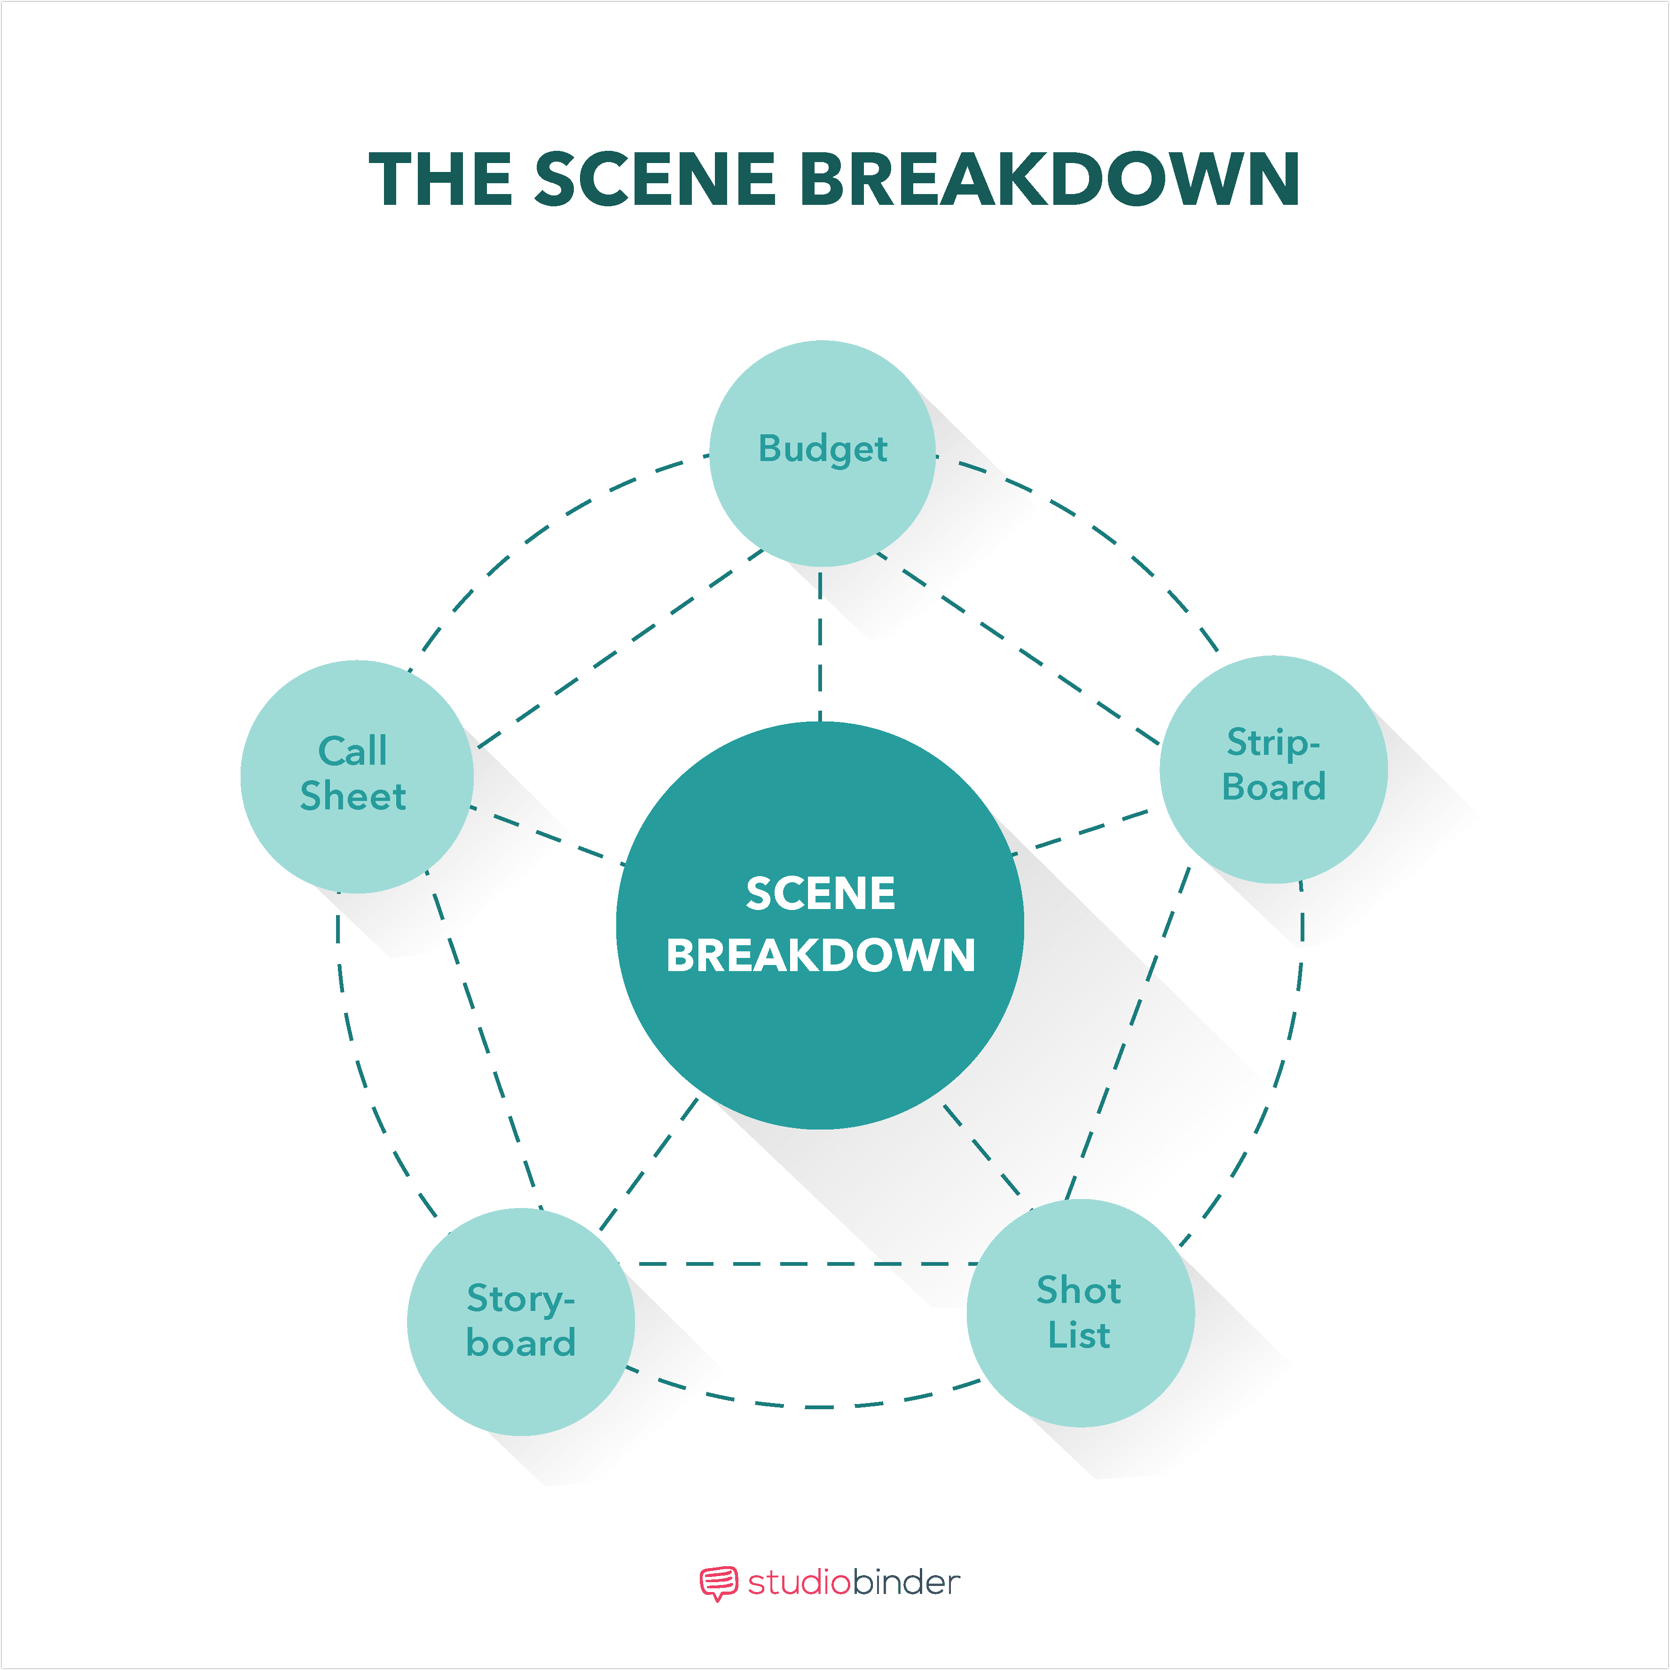 How to Breakdown A Scene - The Scene Breakdown - StudioBinder_ -The Scene Breakdown - StudioBinder